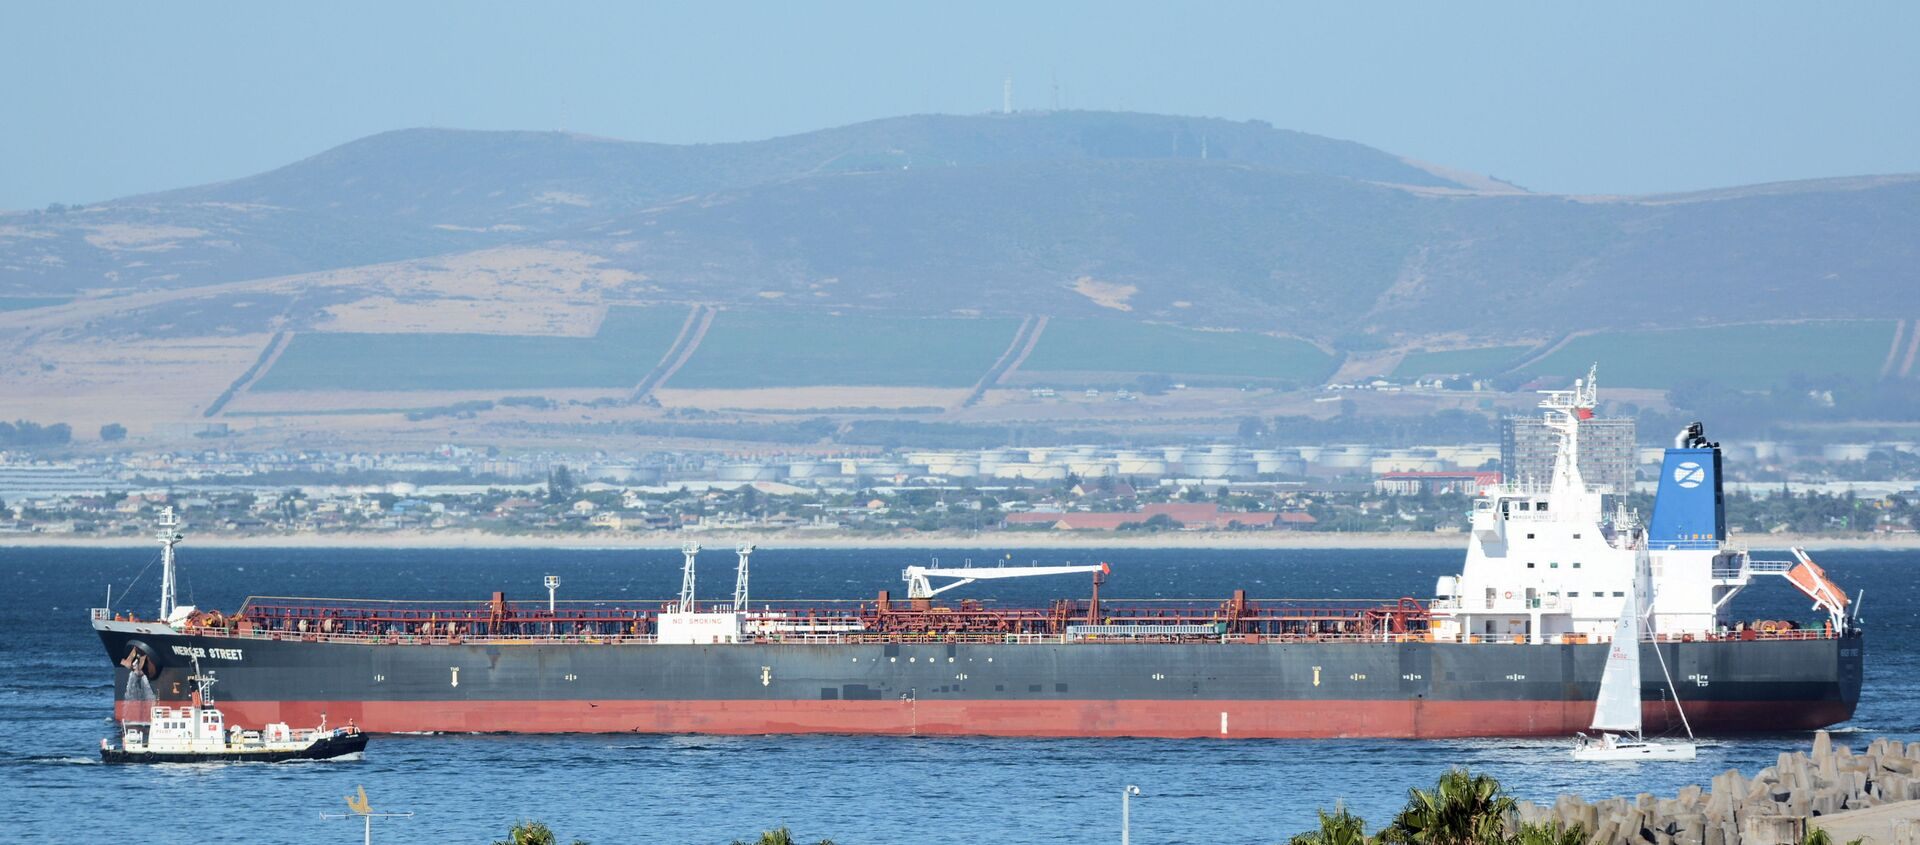 The Mercer Street, a Japanese-owned Liberian-flagged tanker managed by Israeli-owned Zodiac Maritime that was attacked off Oman coast as seen in Cape Town, South Africa, January 2, 2016 in this picture obtained from ship tracker website, MarineTraffic.com. Picture taken January 2, 2016.  Johan Victor/Handout via REUTERS THIS IMAGE HAS BEEN SUPPLIED BY A THIRD PARTY. MANDATORY CREDIT. NO RESALES. NO ARCHIVES. - Sputnik International, 1920, 03.08.2021